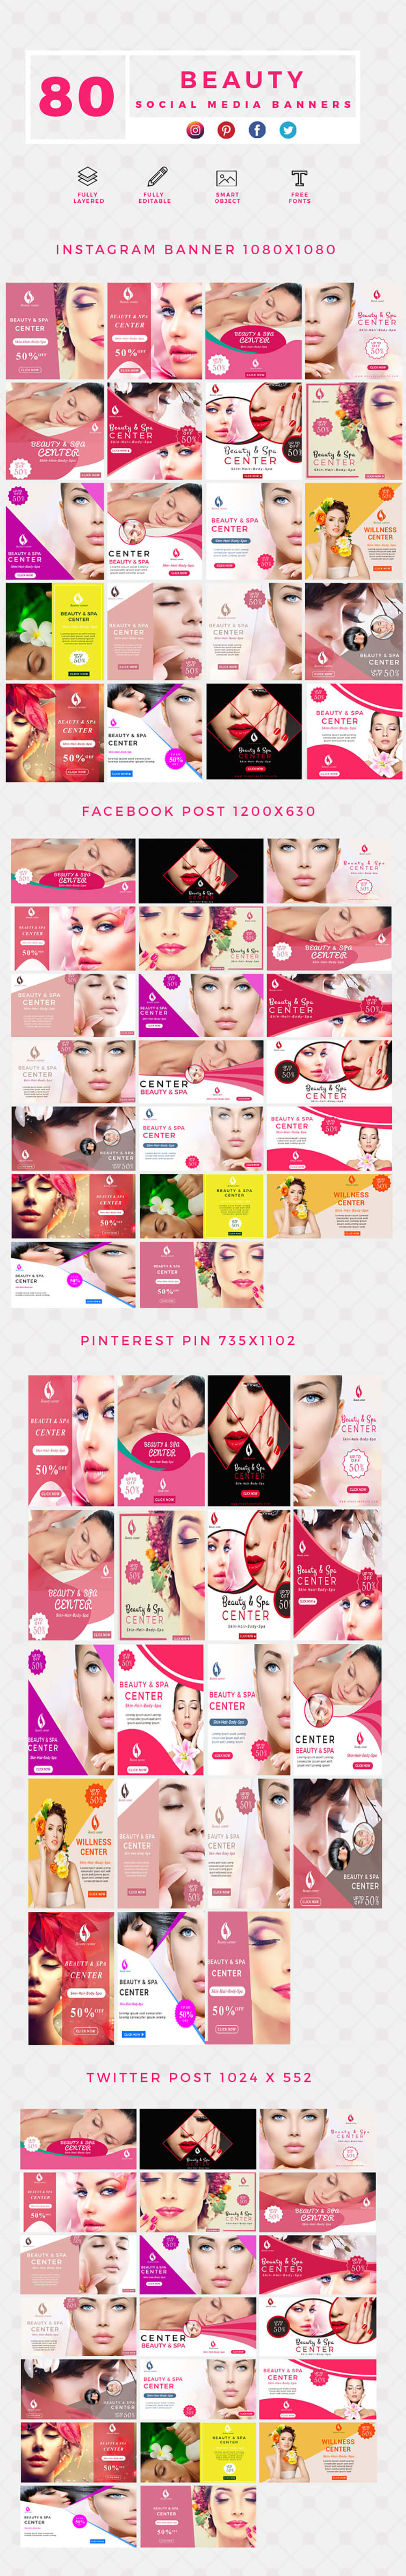 640 Social Media Banner Templates Bundle PREVIEW-BEAUTY